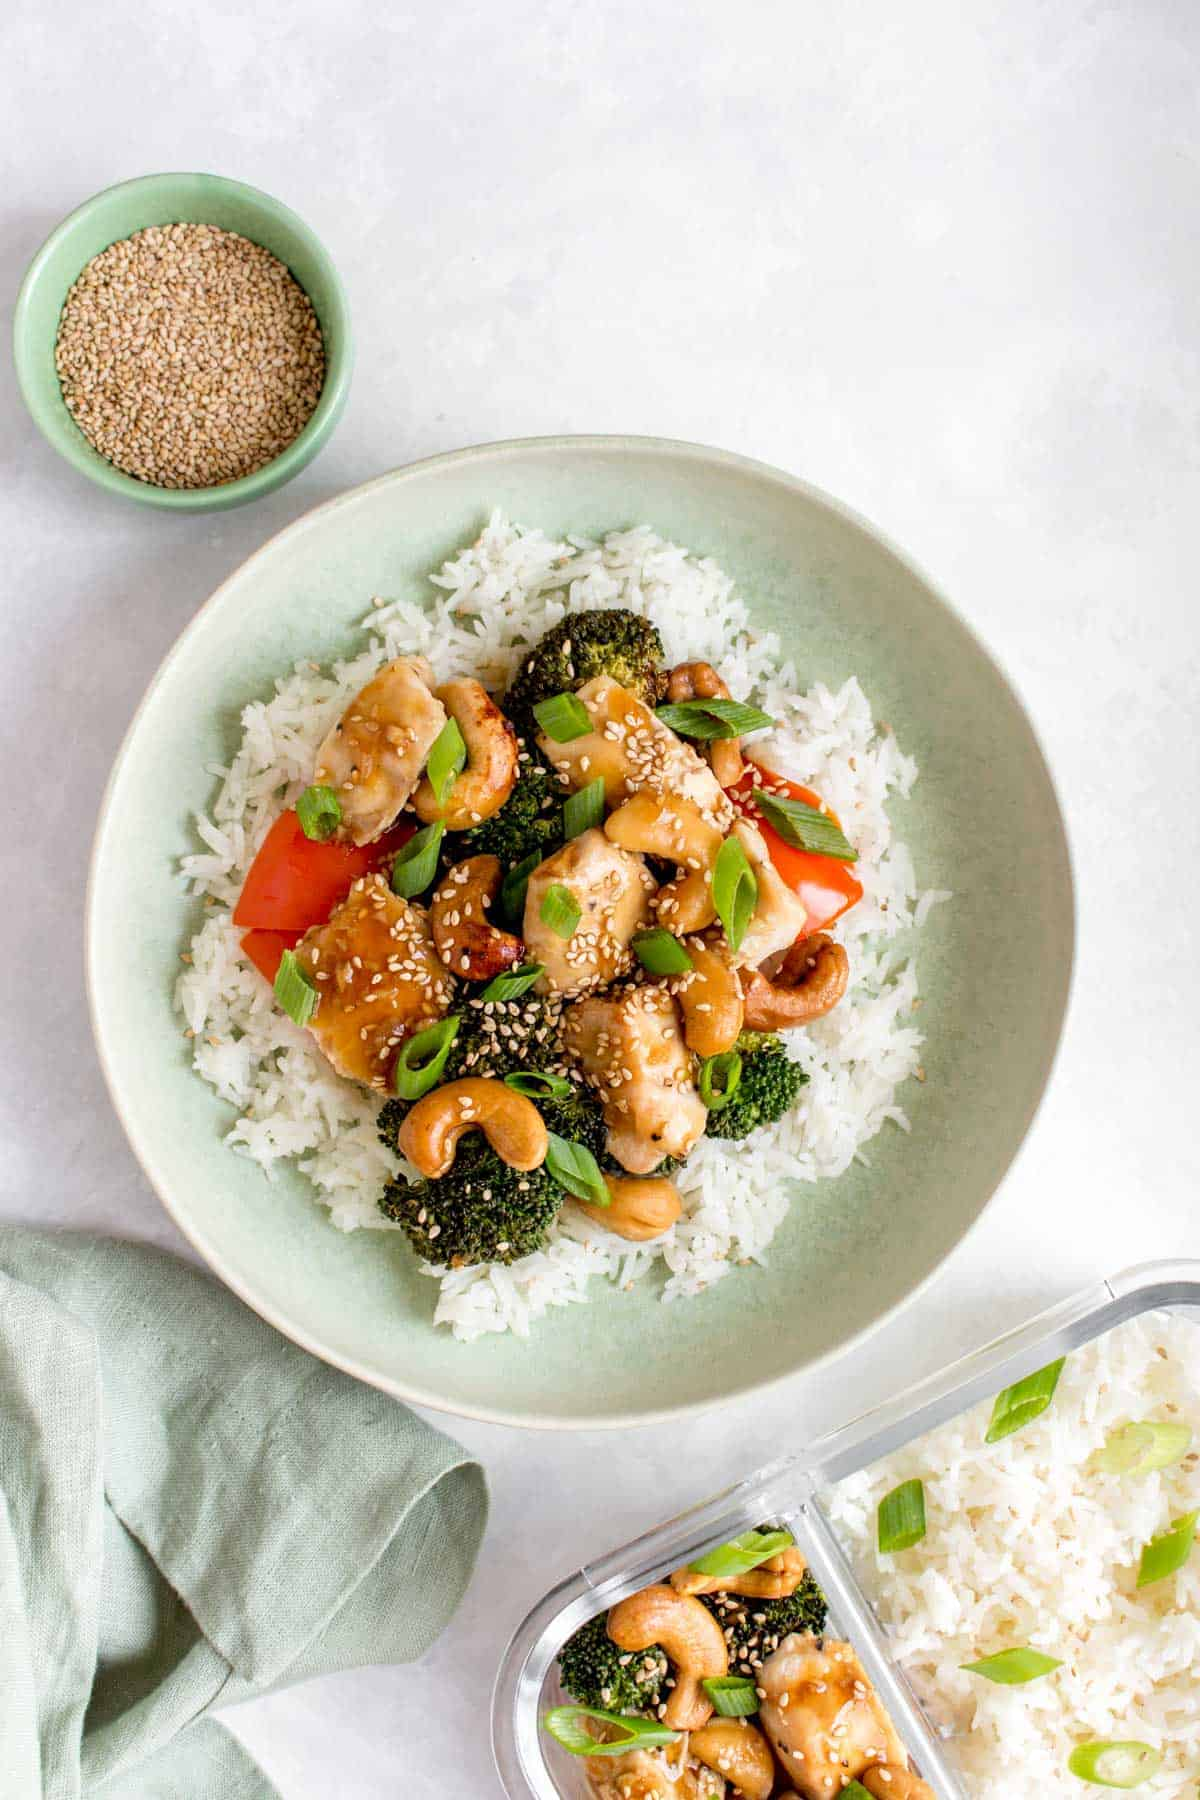 A plate of rice with cashew chicken on top with some sesame seeds on the side and as garnish.